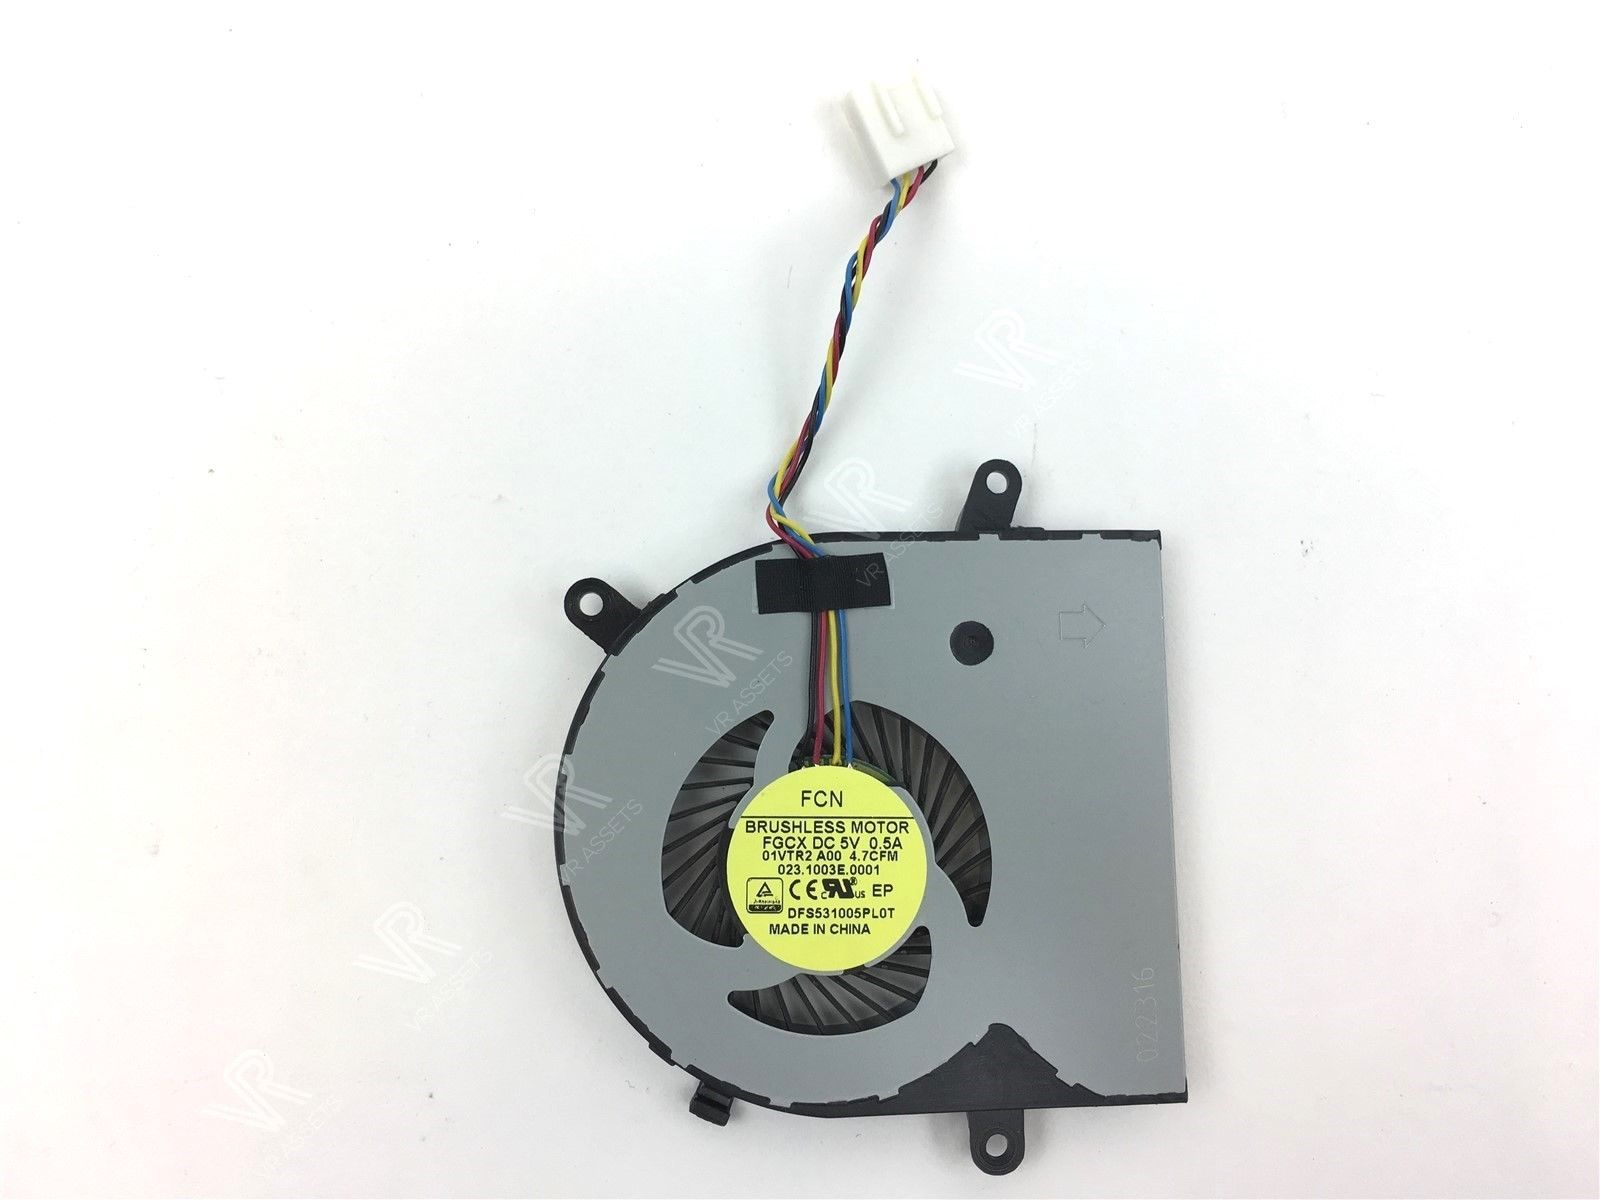 Dell Inspiron 24-3455 24-3459 AIO CPU Cooling Fan DC Brushless FGCX 1VTR2 01VTR2